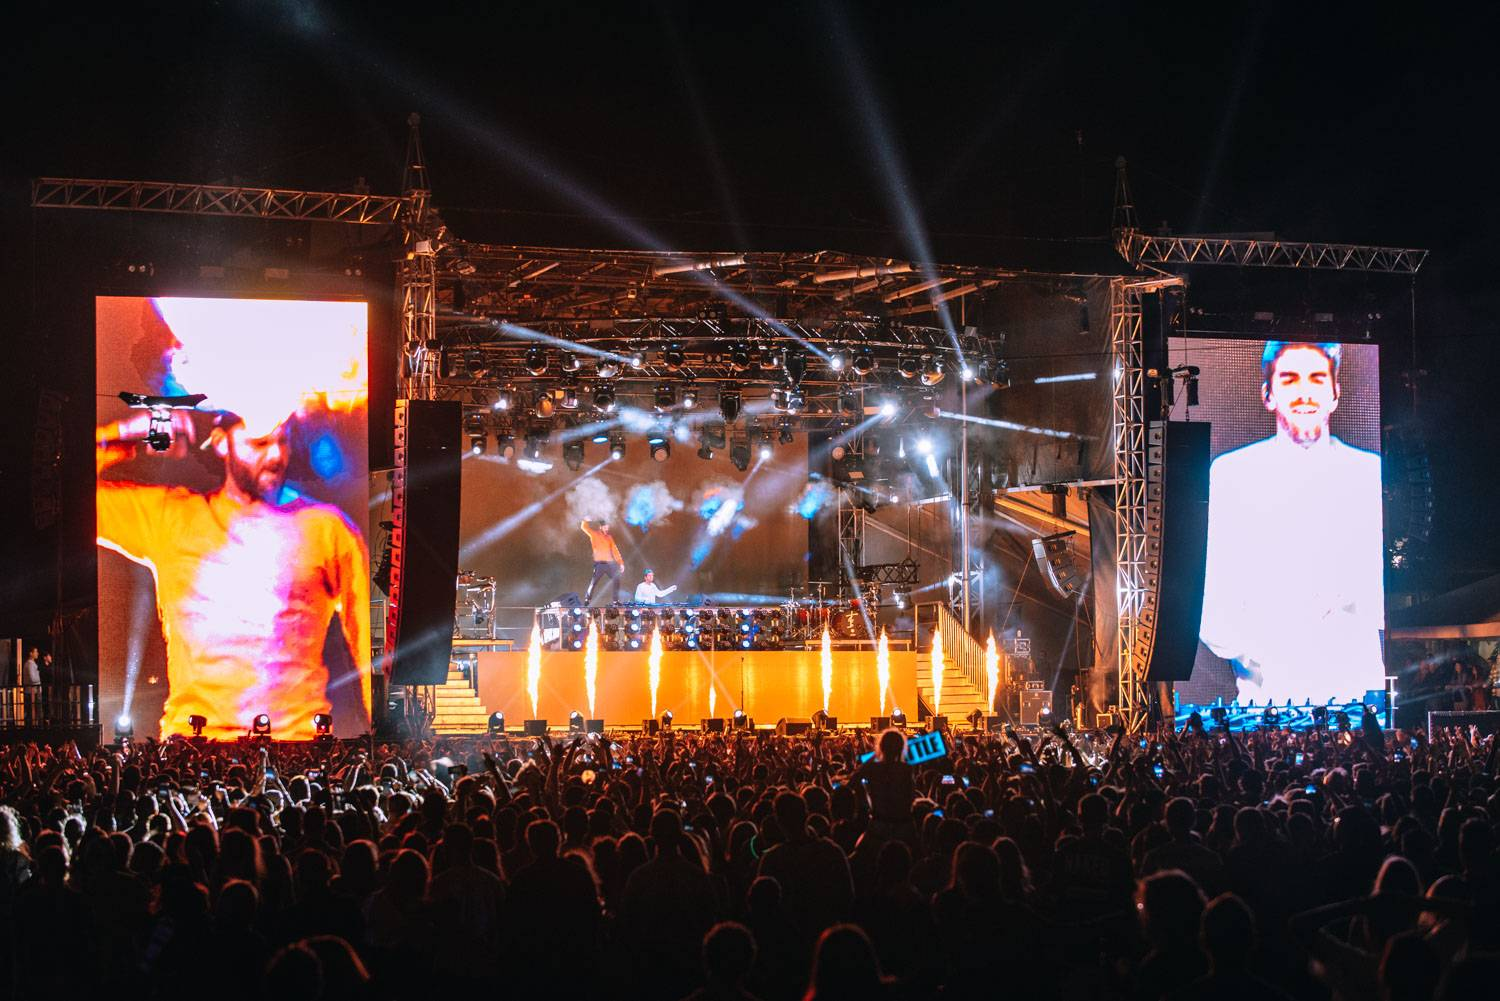 Chainsmokers at the Bumbershoot Music Festival 2018 - Day1. Aug 31 2018. Pavel Boiko photo.